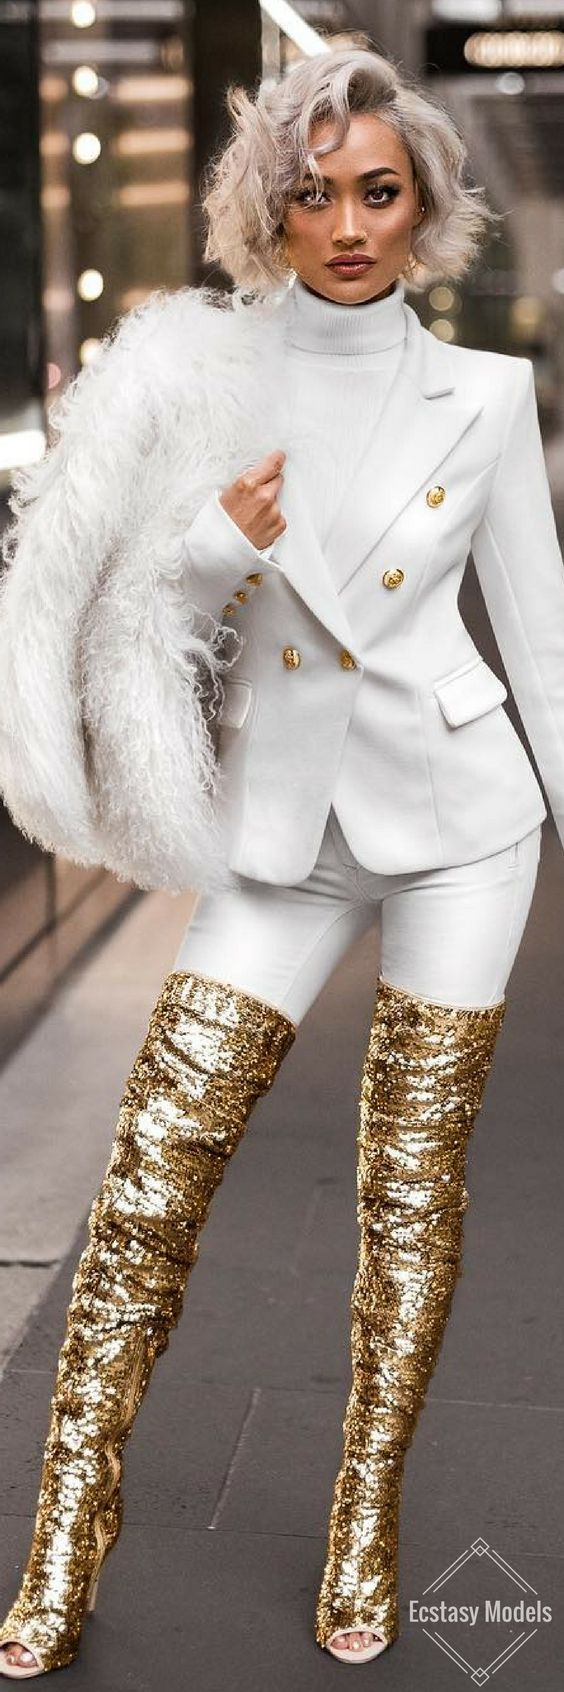 Best 25+ White boots ideas on Pinterest | White women\u0027s boots ...